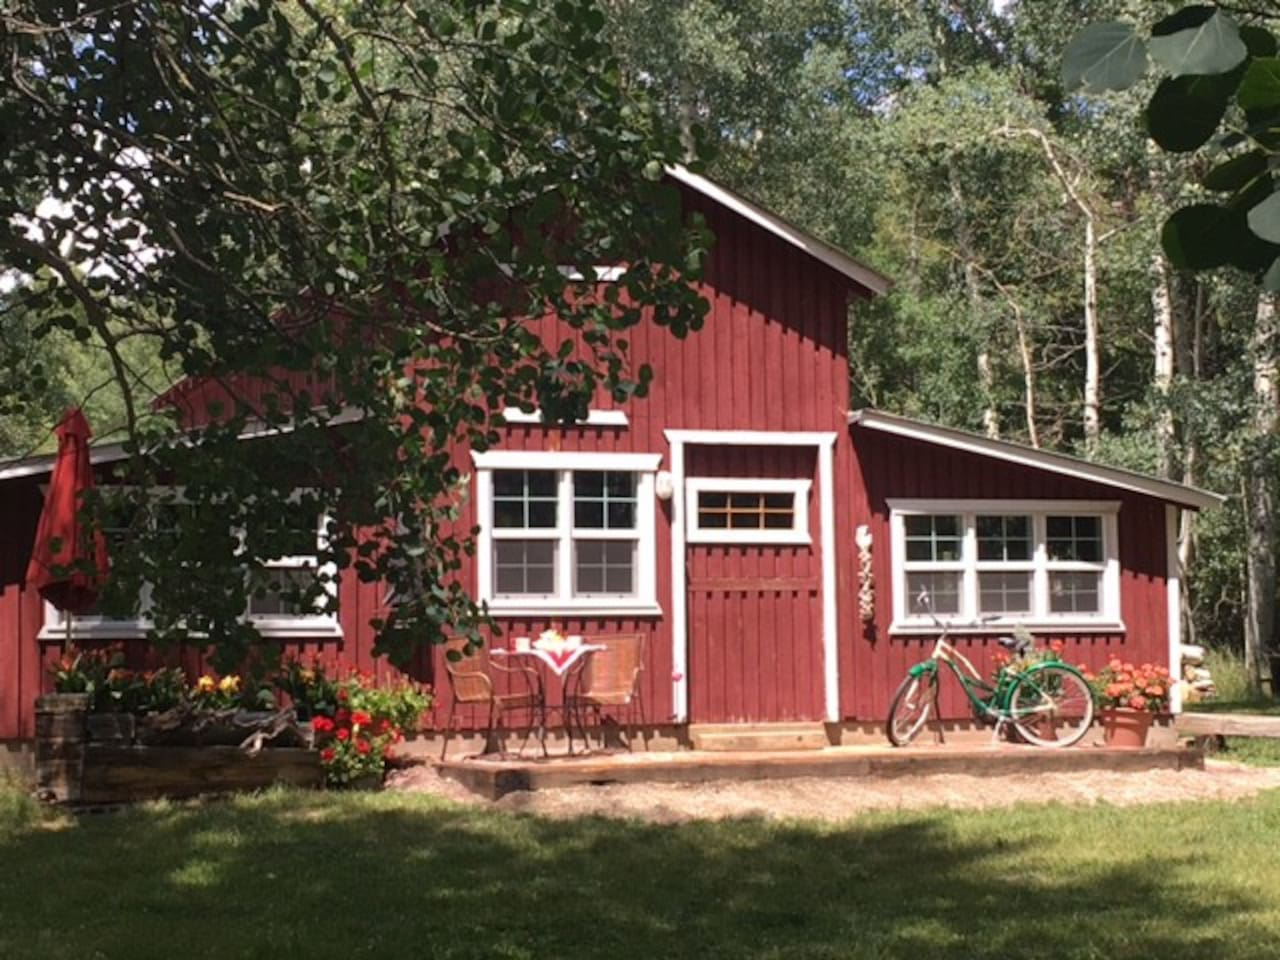 Enjoy it all!  Barn, Beach, Retro all on the South Ark River in your front yard.   We provide a fascinating stage and props - you are the lead players for the scenes of your romantic interlude & adventures... relax and enjoy!